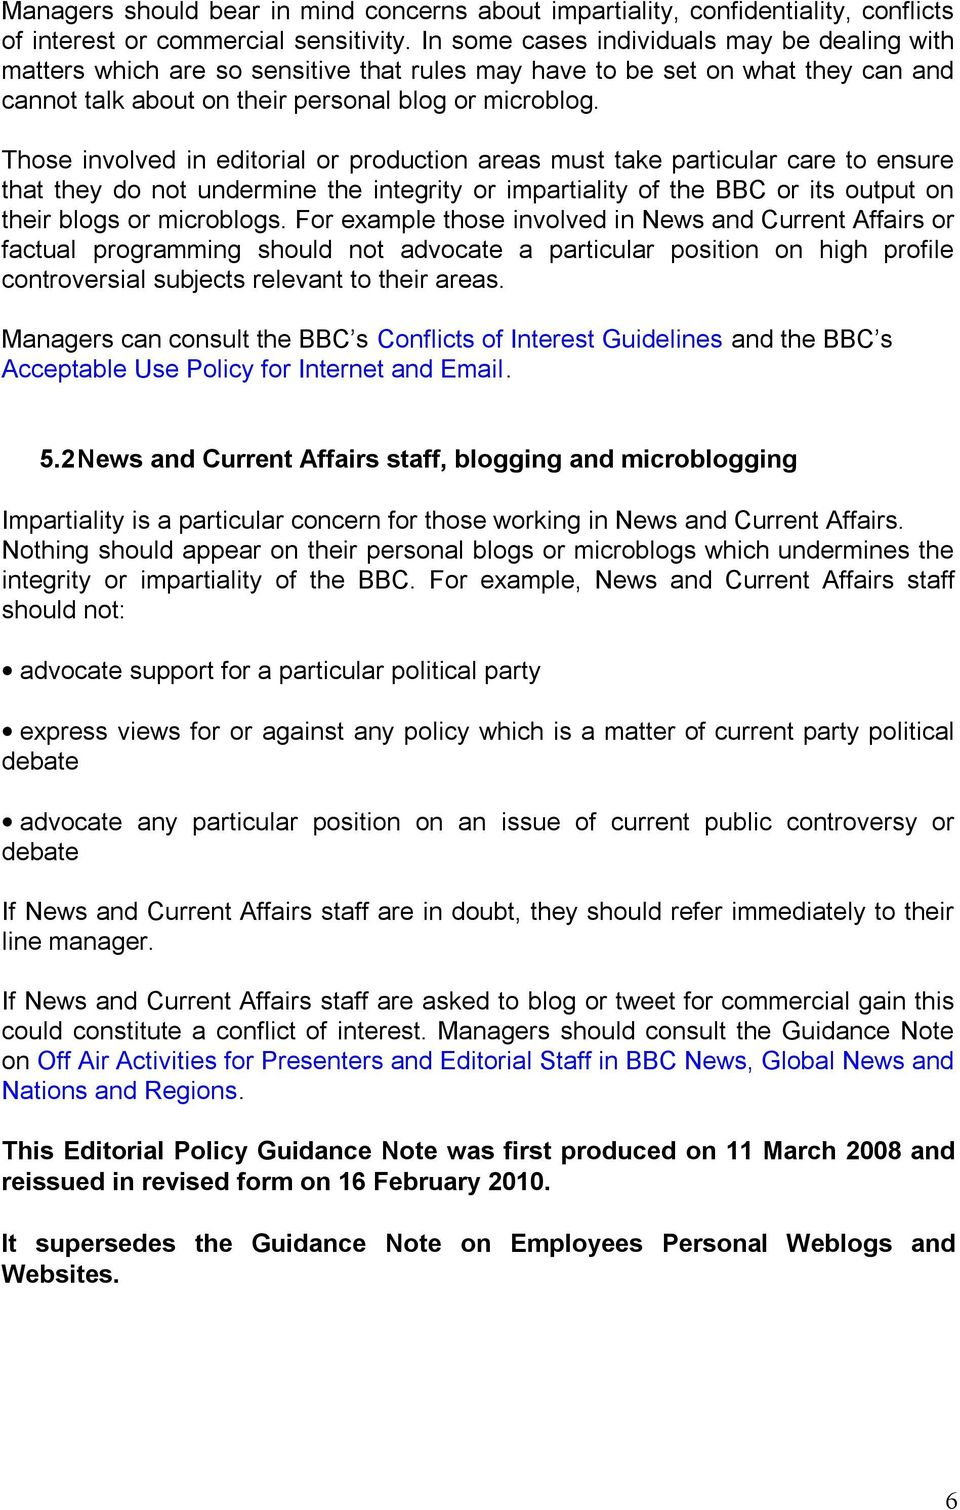 Those involved in editorial or production areas must take particular care to ensure that they do not undermine the integrity or impartiality of the BBC or its output on their blogs or microblogs.